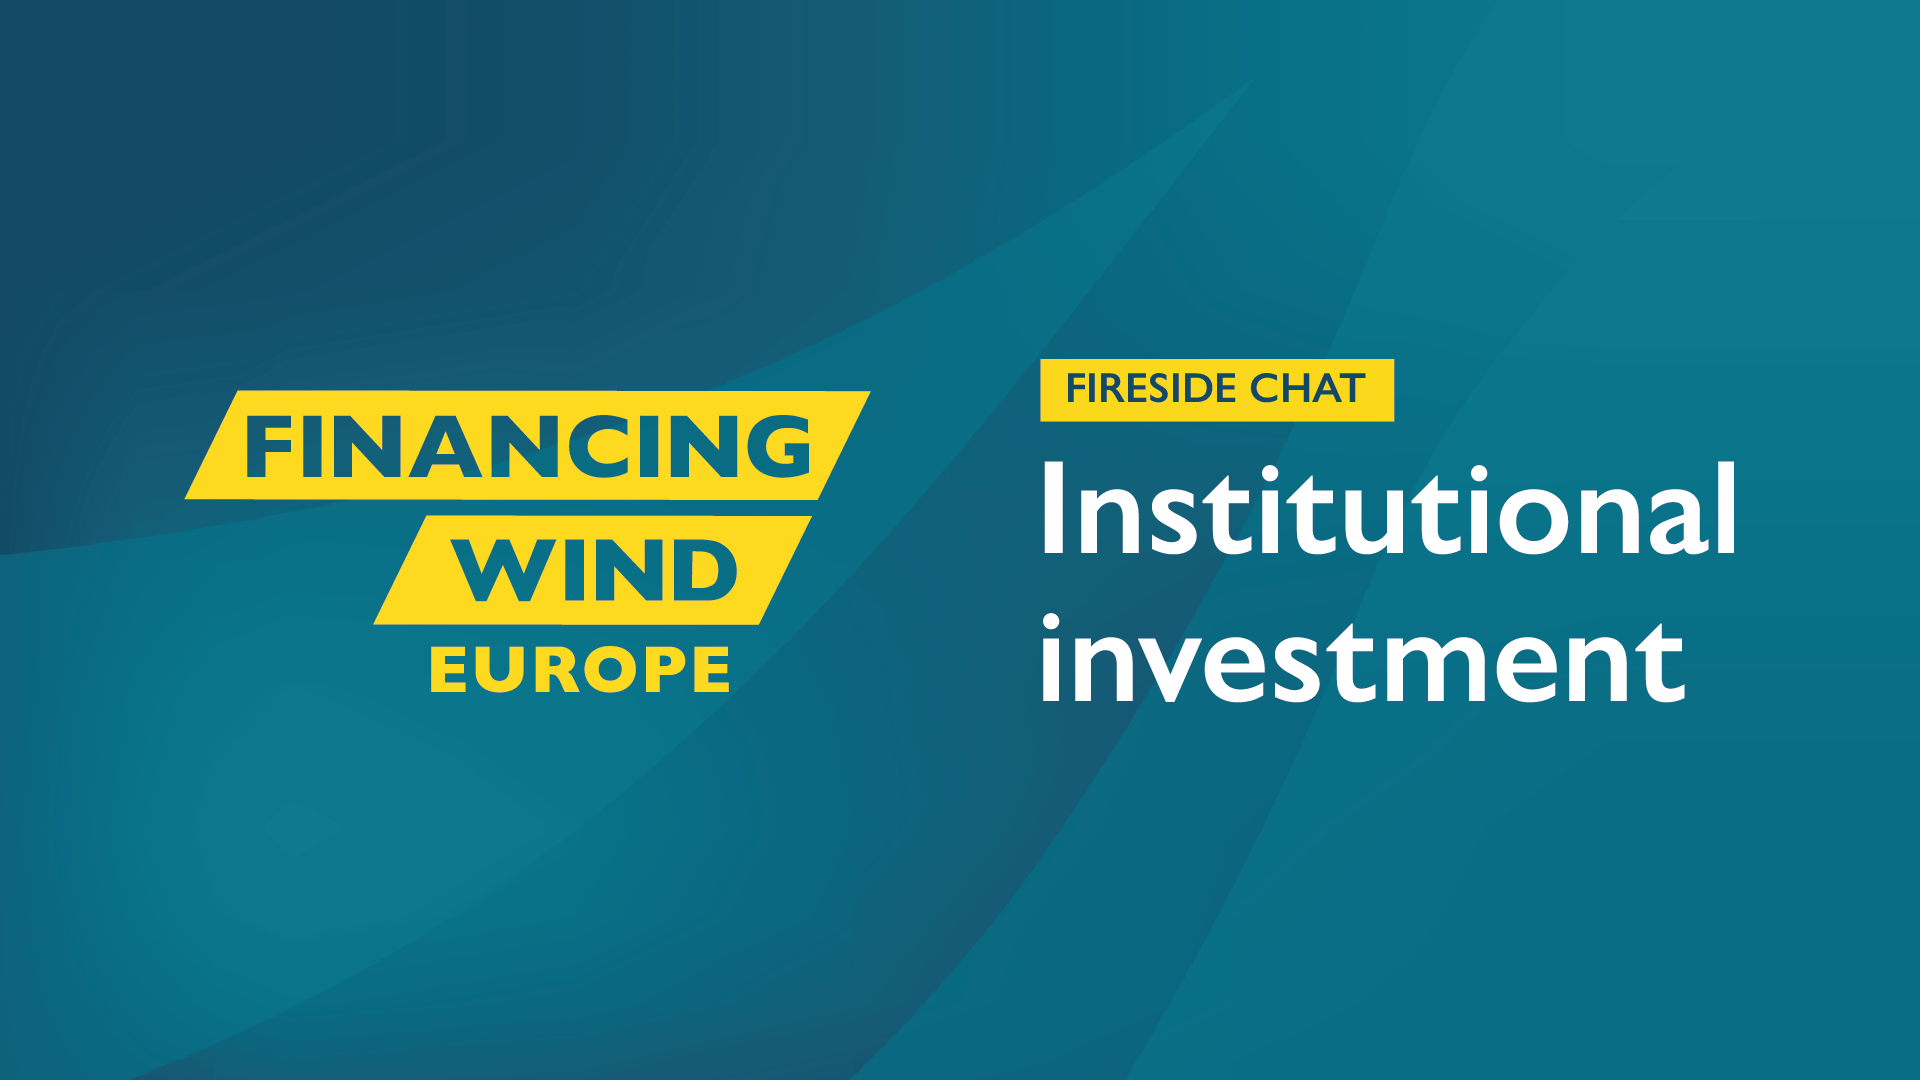 Fireside Chat: Institutional investment